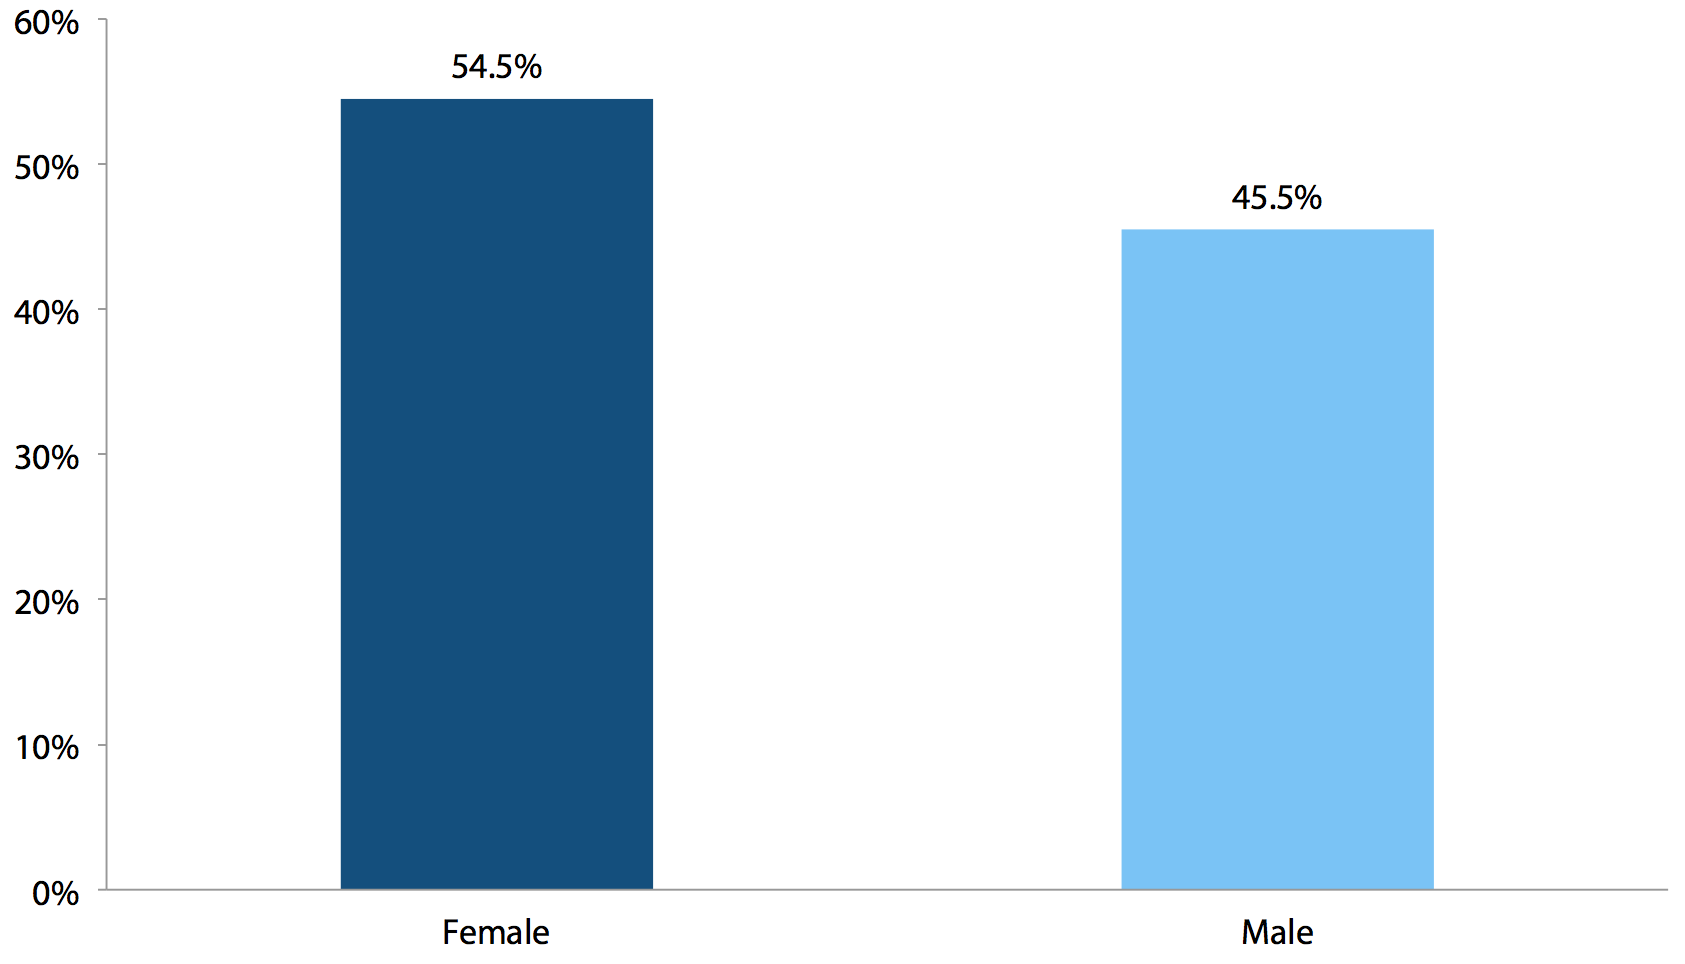 Gender of workers affected by increasing the federal minimum wage to $9.80 (by July 1, 2014)